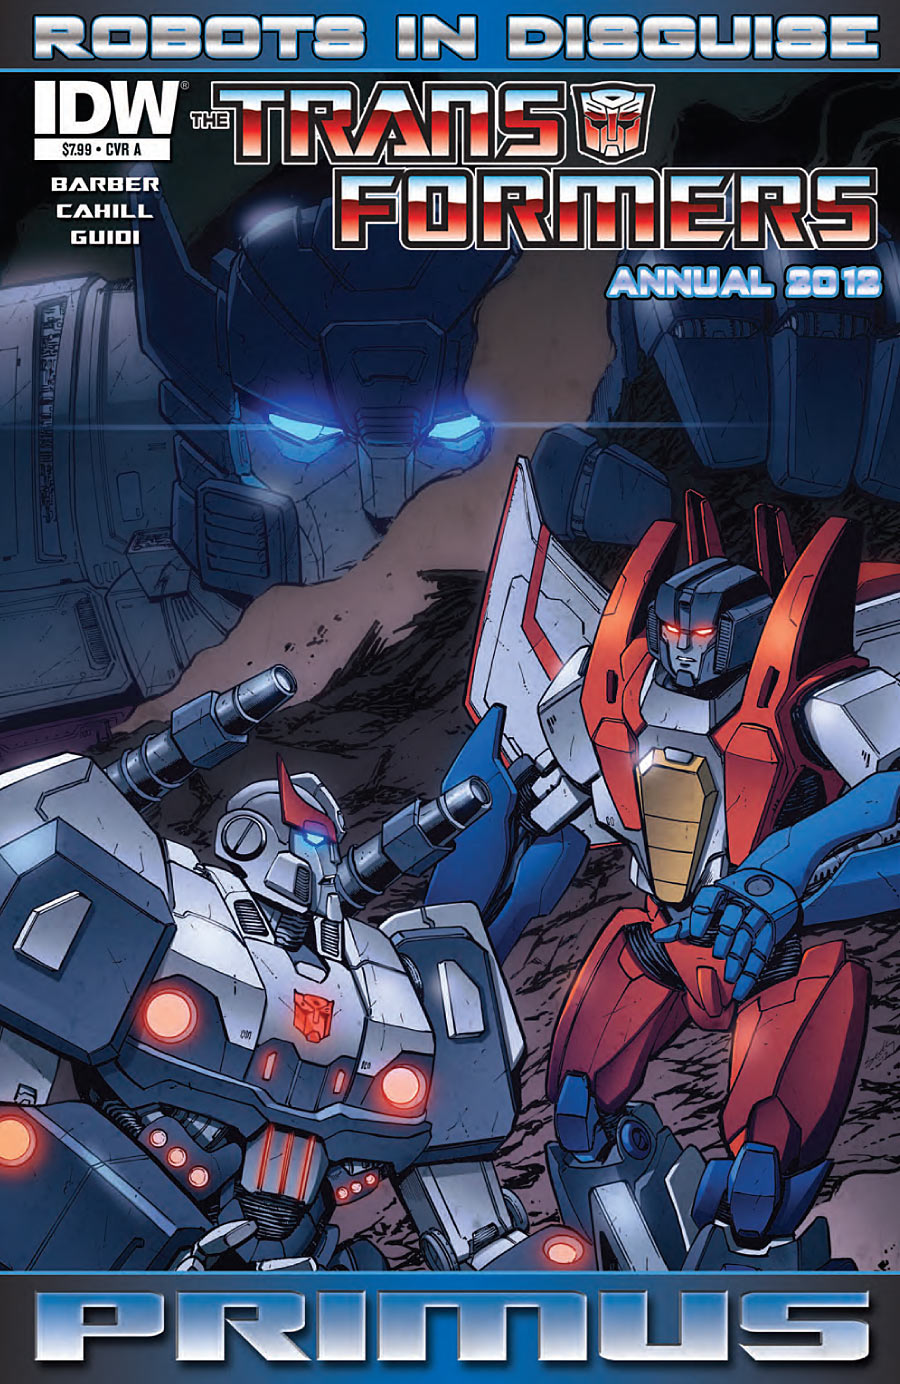 Transformers Robots in Disguise Annual 2012 Image